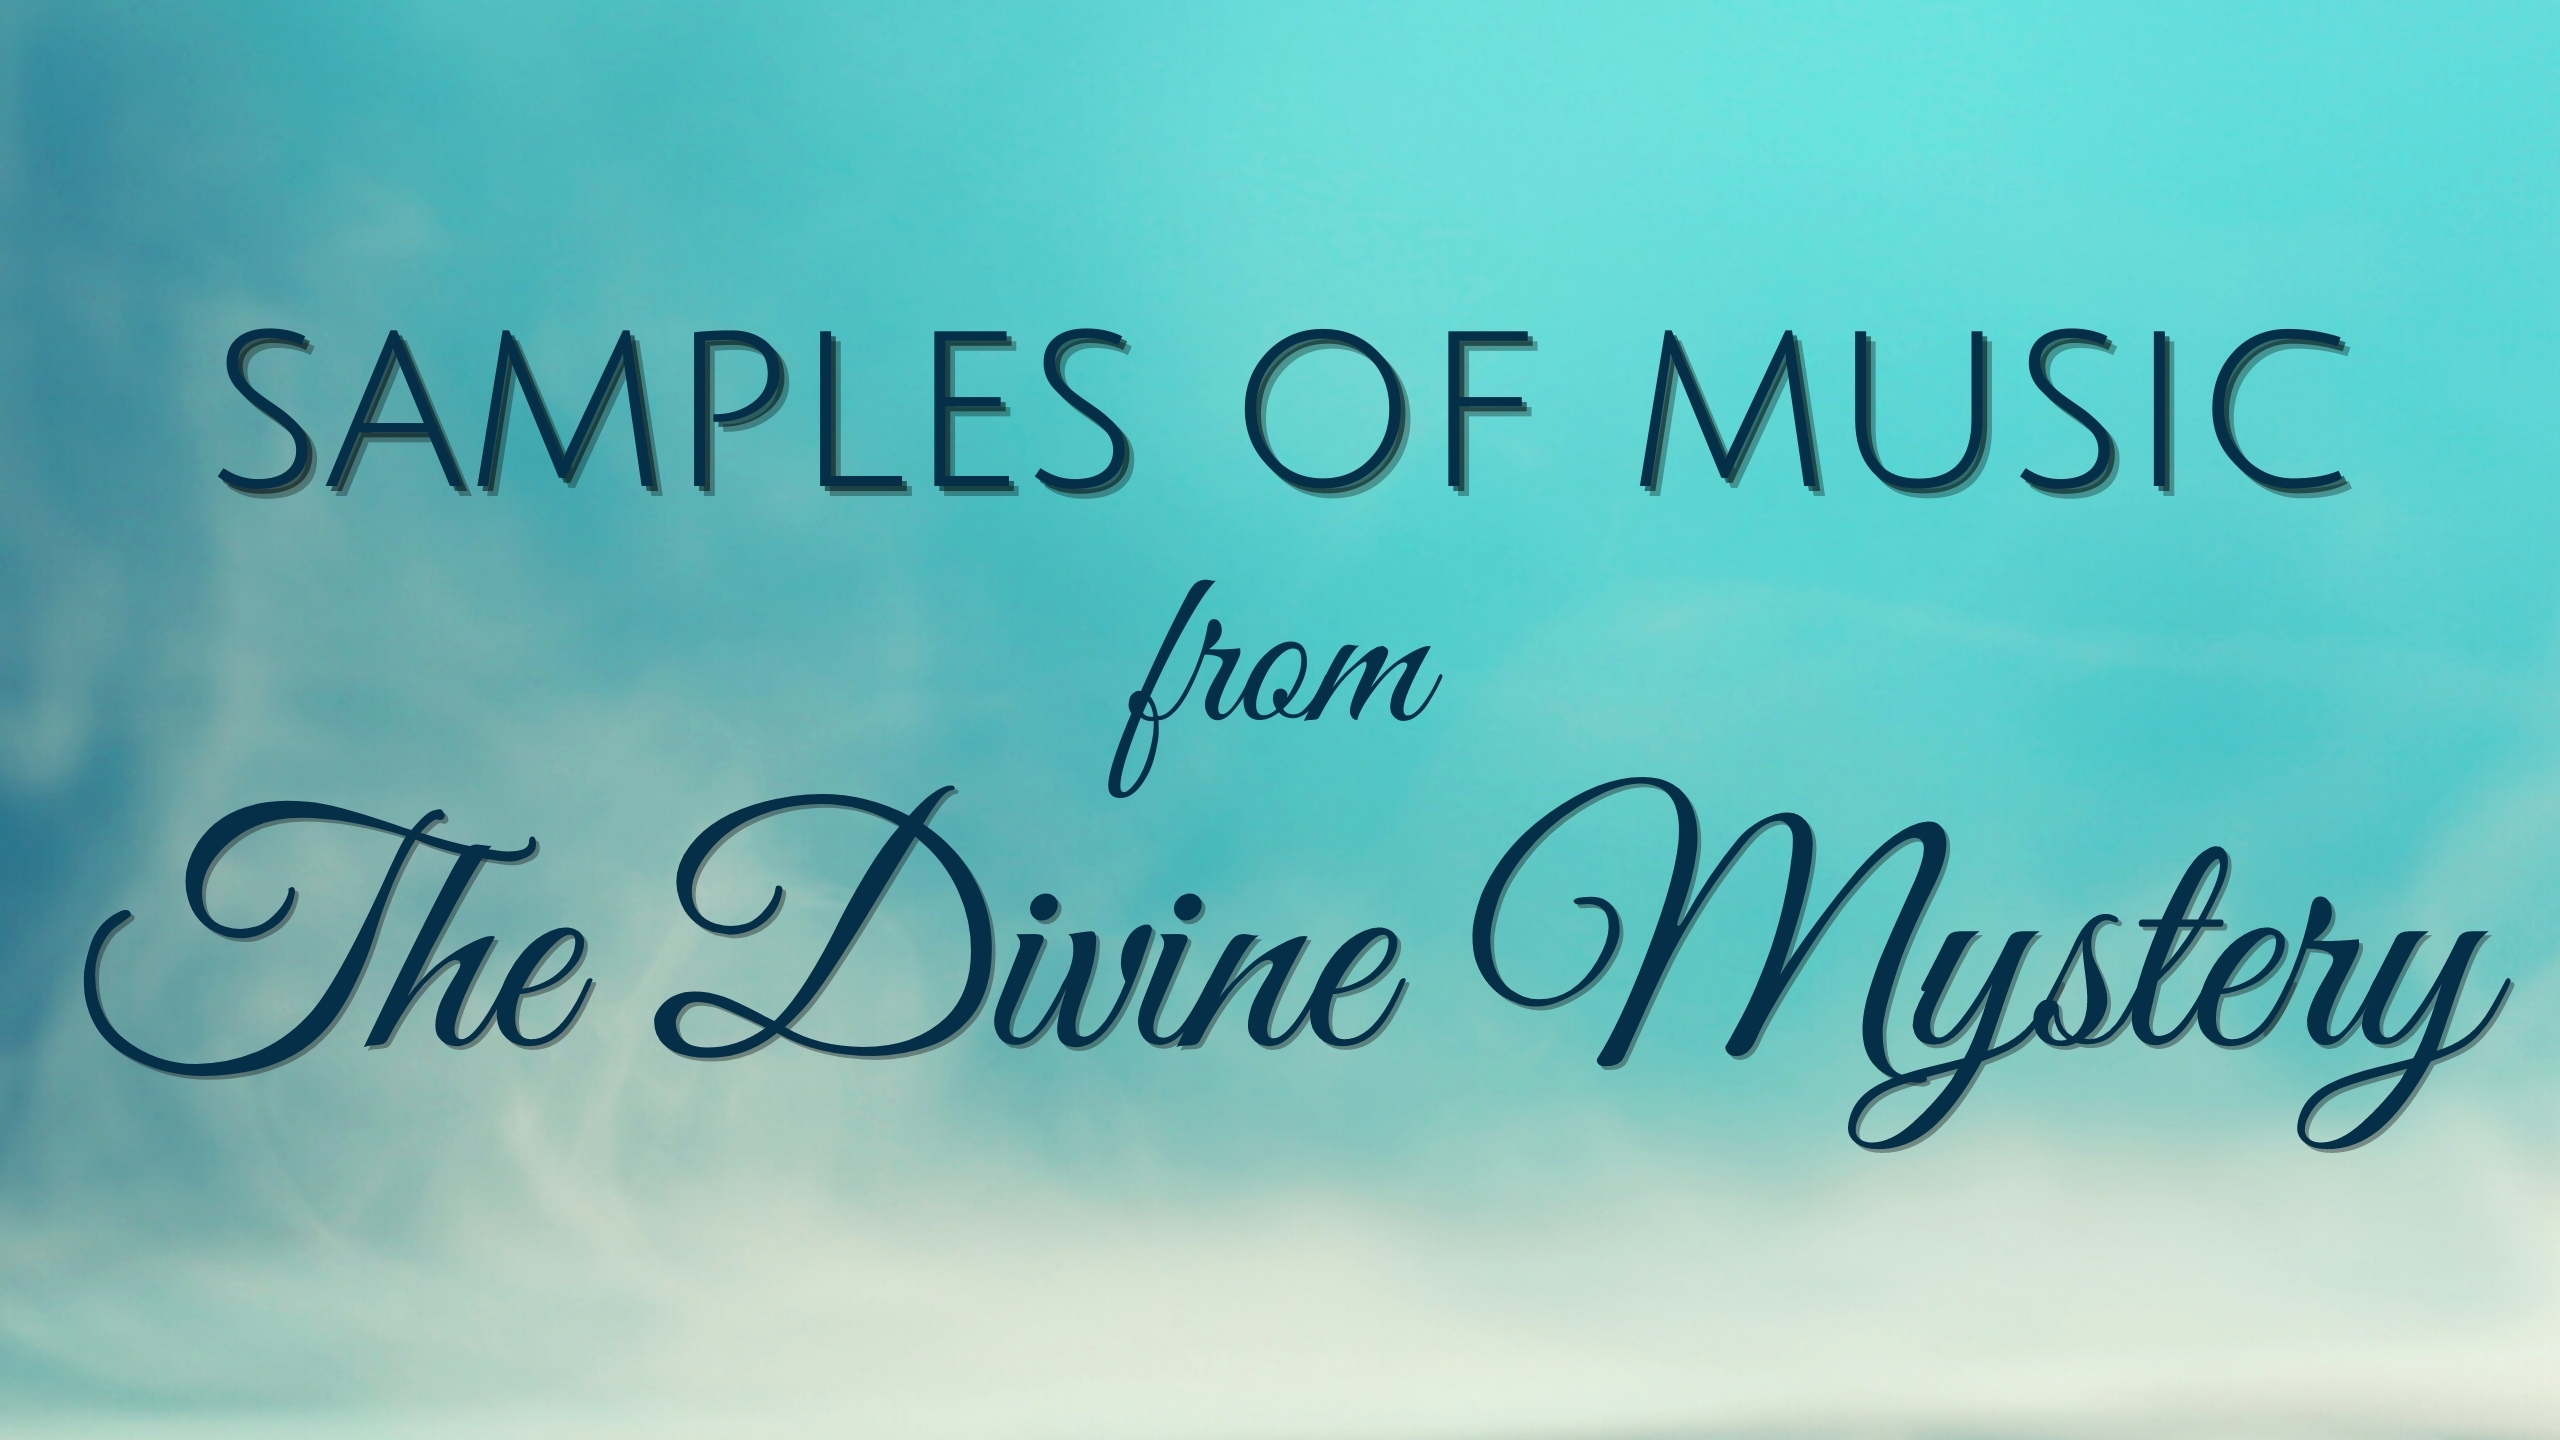 Teaser music clips from The Divine Mystery